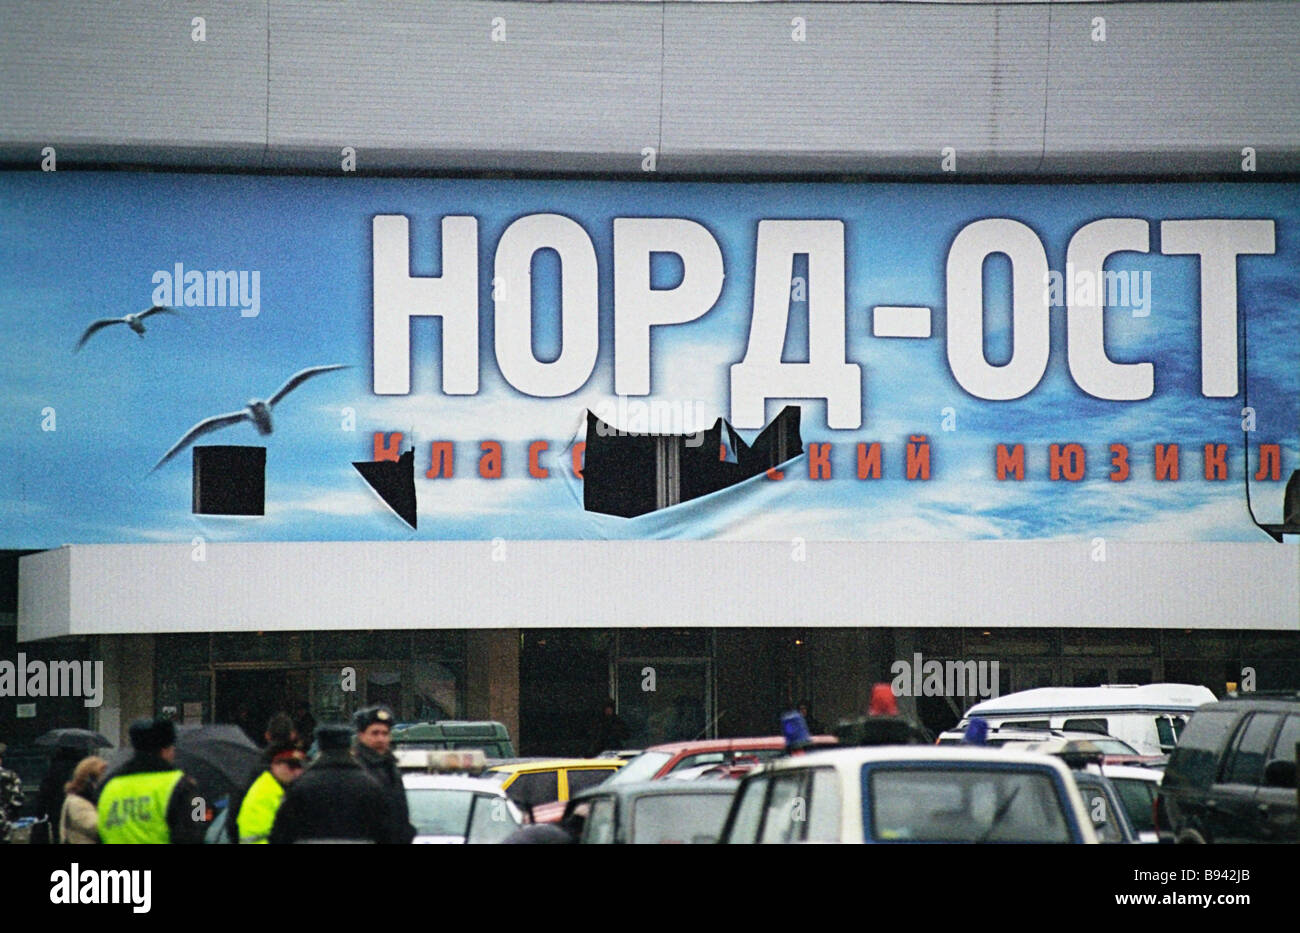 Market Dubrovka Moscow - mode of operation